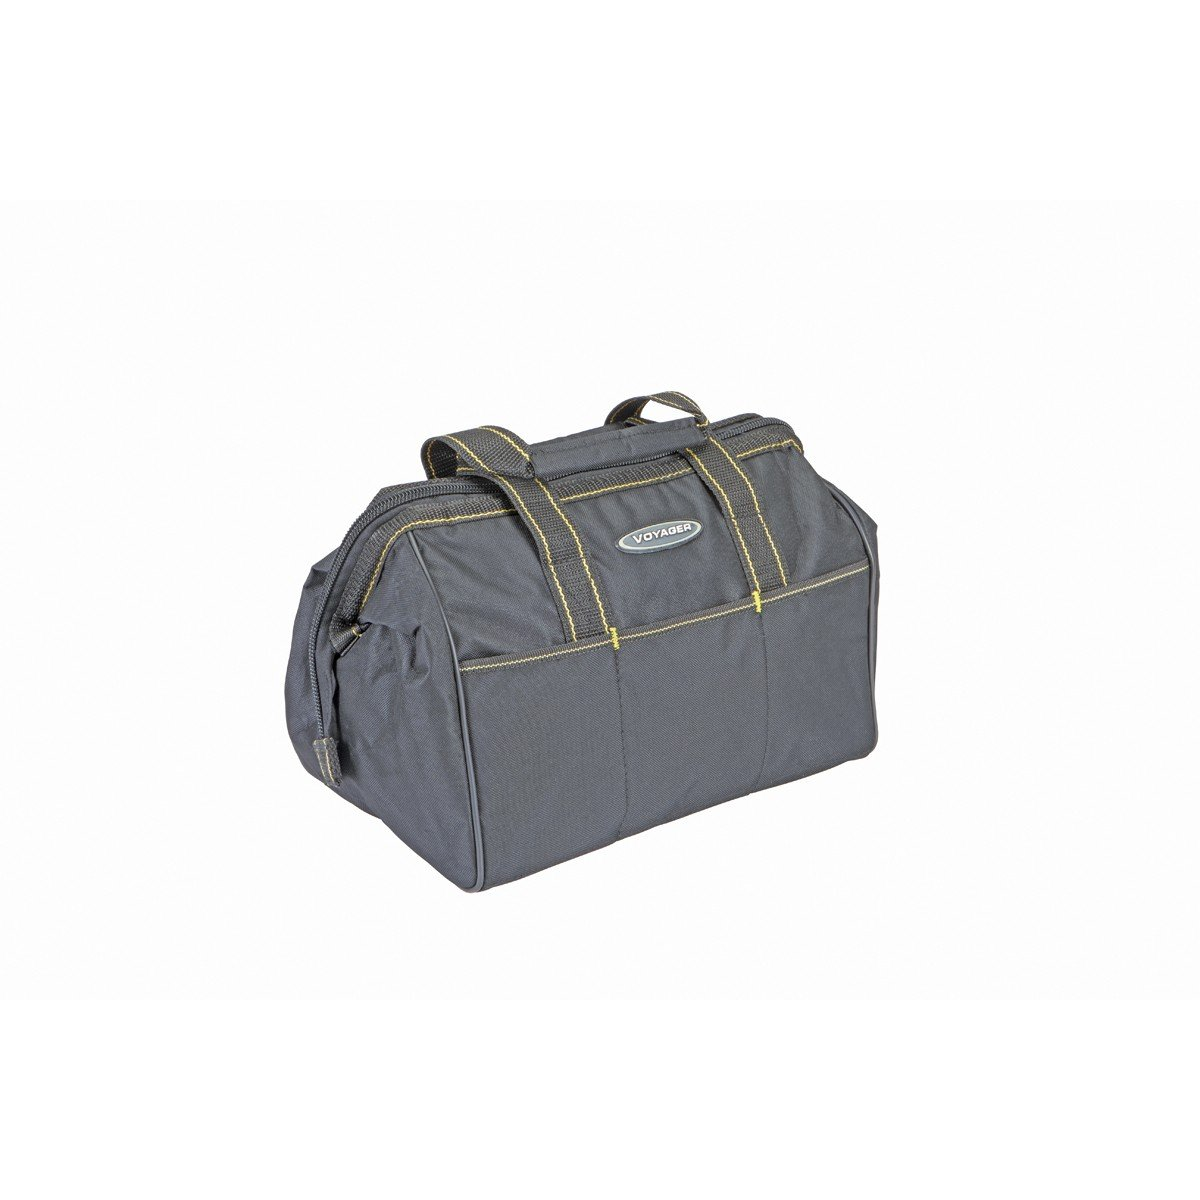 12'' Tool Bag Black/Yellow by Western Safety